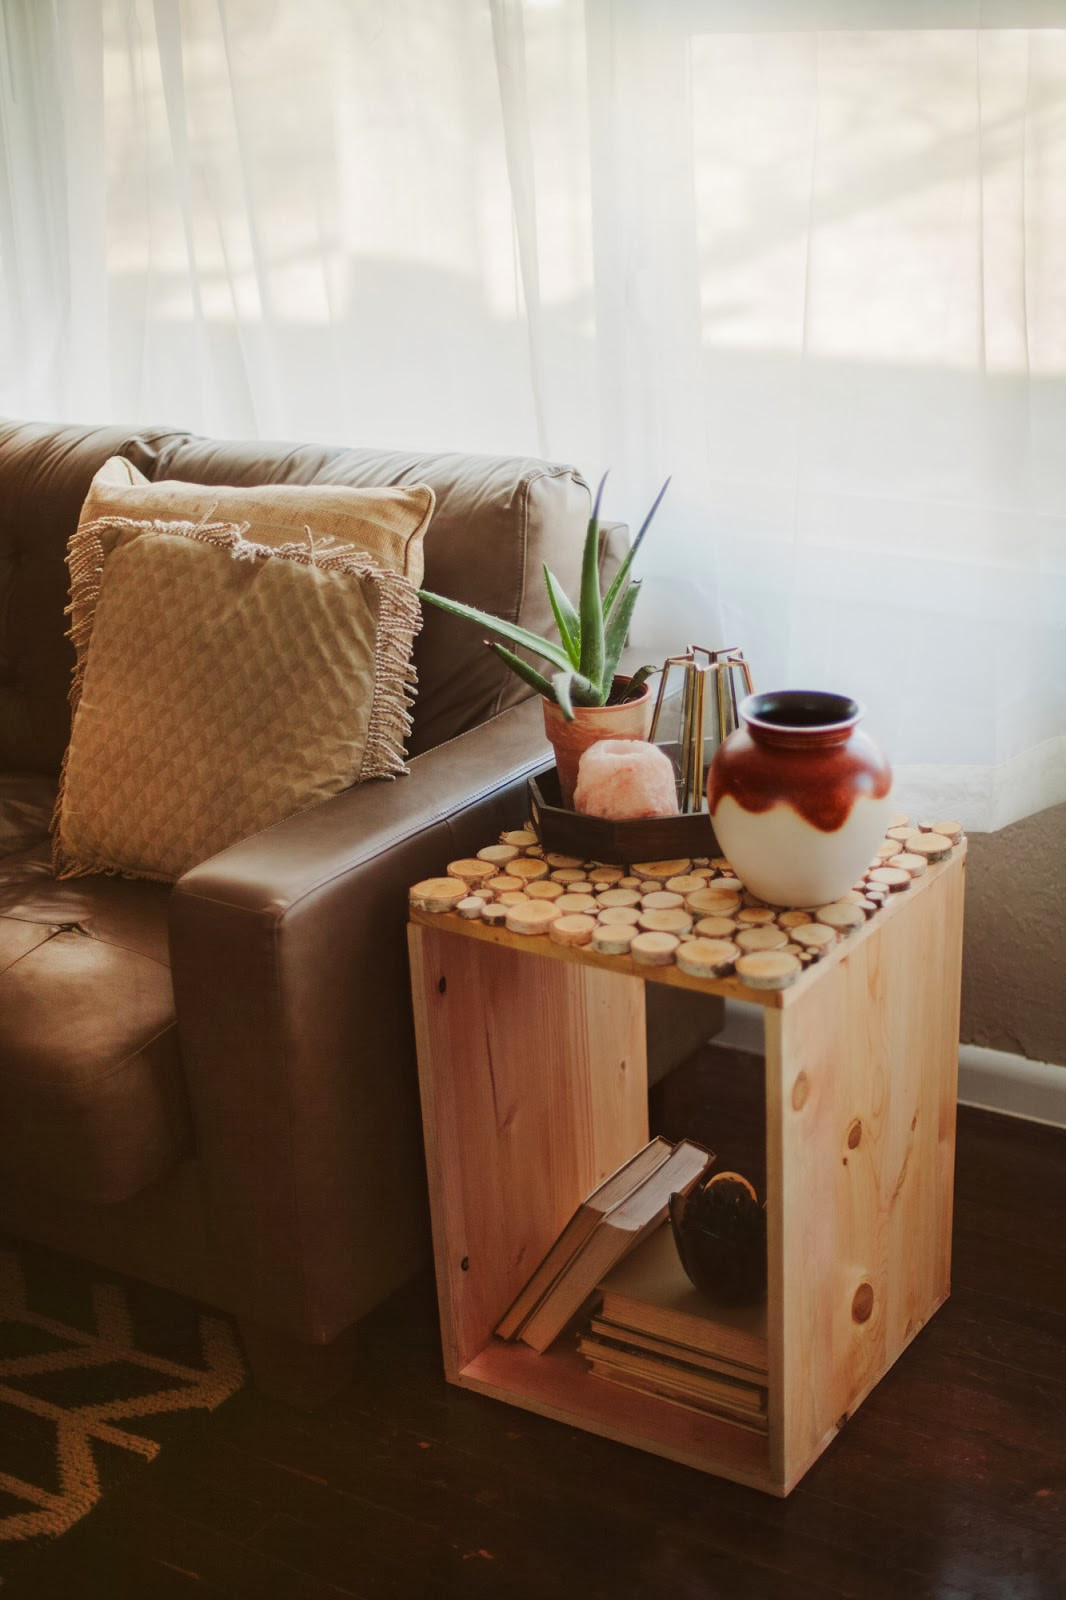 Best ideas about Side Tables DIY . Save or Pin Sincerely Kinsey Birch Wood Table DIY Now.